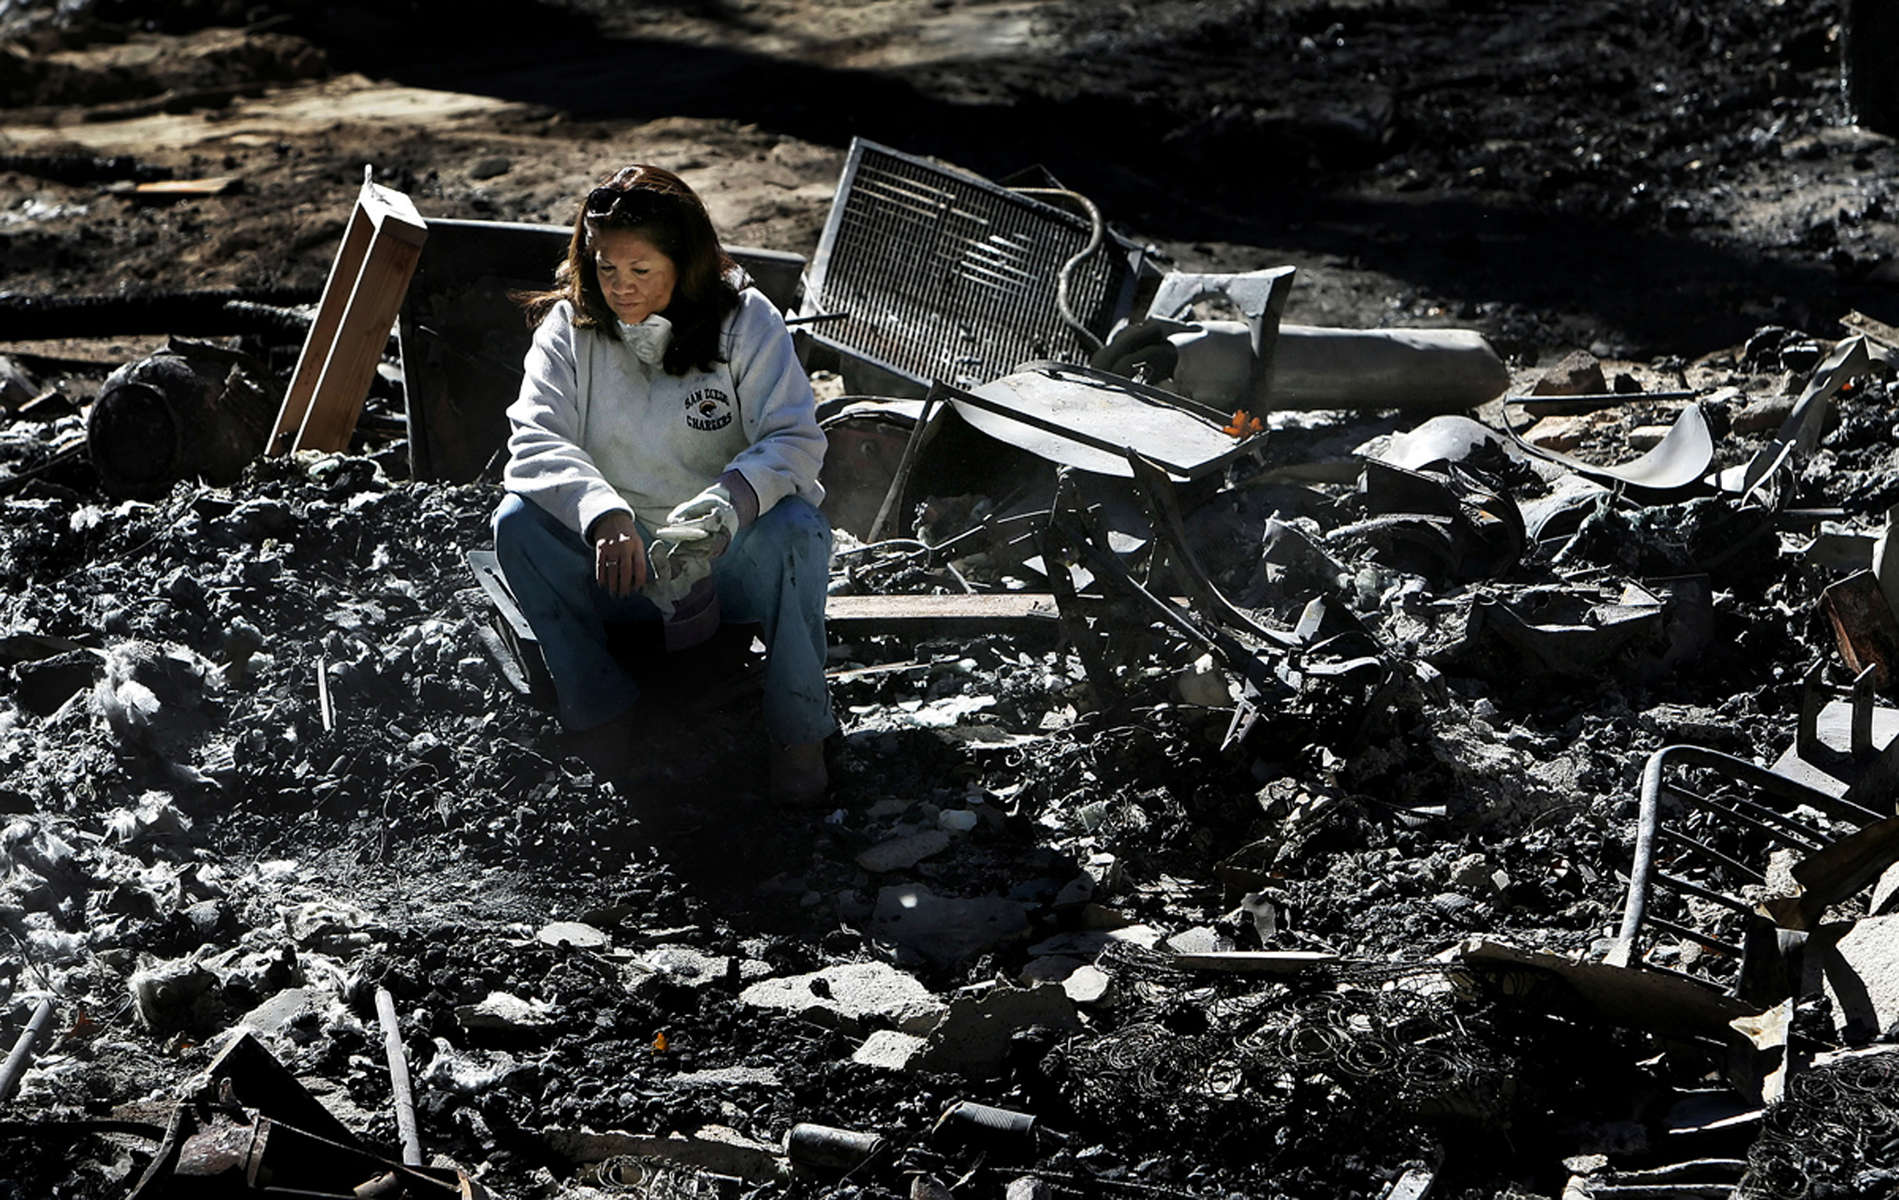 Tess Najarian sits in the rubble of her burned home on Holcomb Creek Drive while visiting the site for the first time since the Slide Fire destroyed it. Residents from Green Valley Lake, Calif., were allowed to see their neighborhood after mandatory evacuation restrictionswere lifted. (The Press-Enterprise/ Mark Zaleski)